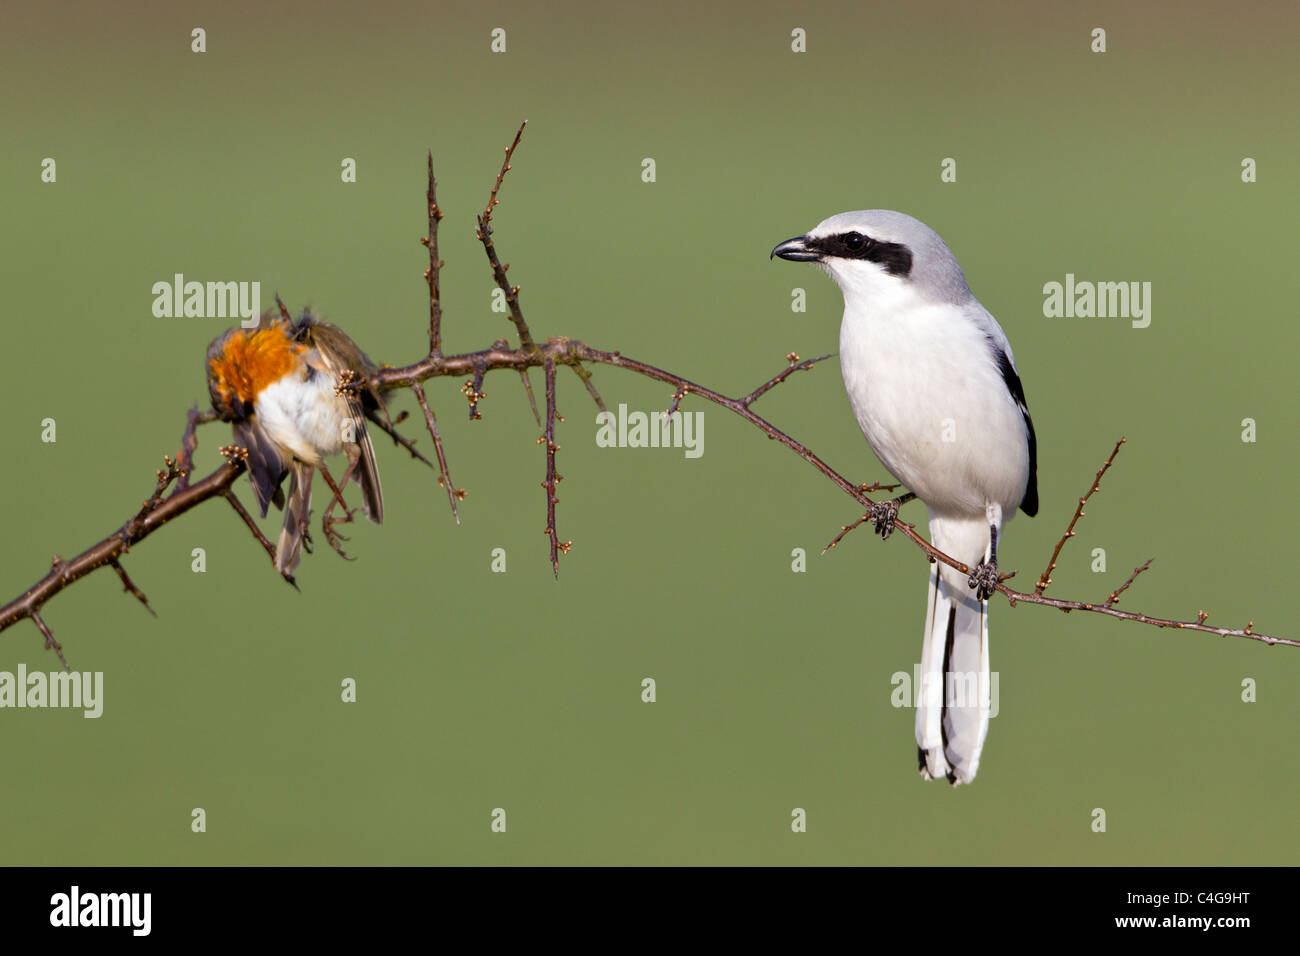 Great Greay Shrike (Lanius excubitor), perched on branch, whith impaled robin, Lower Saxony, Germany - Stock Image